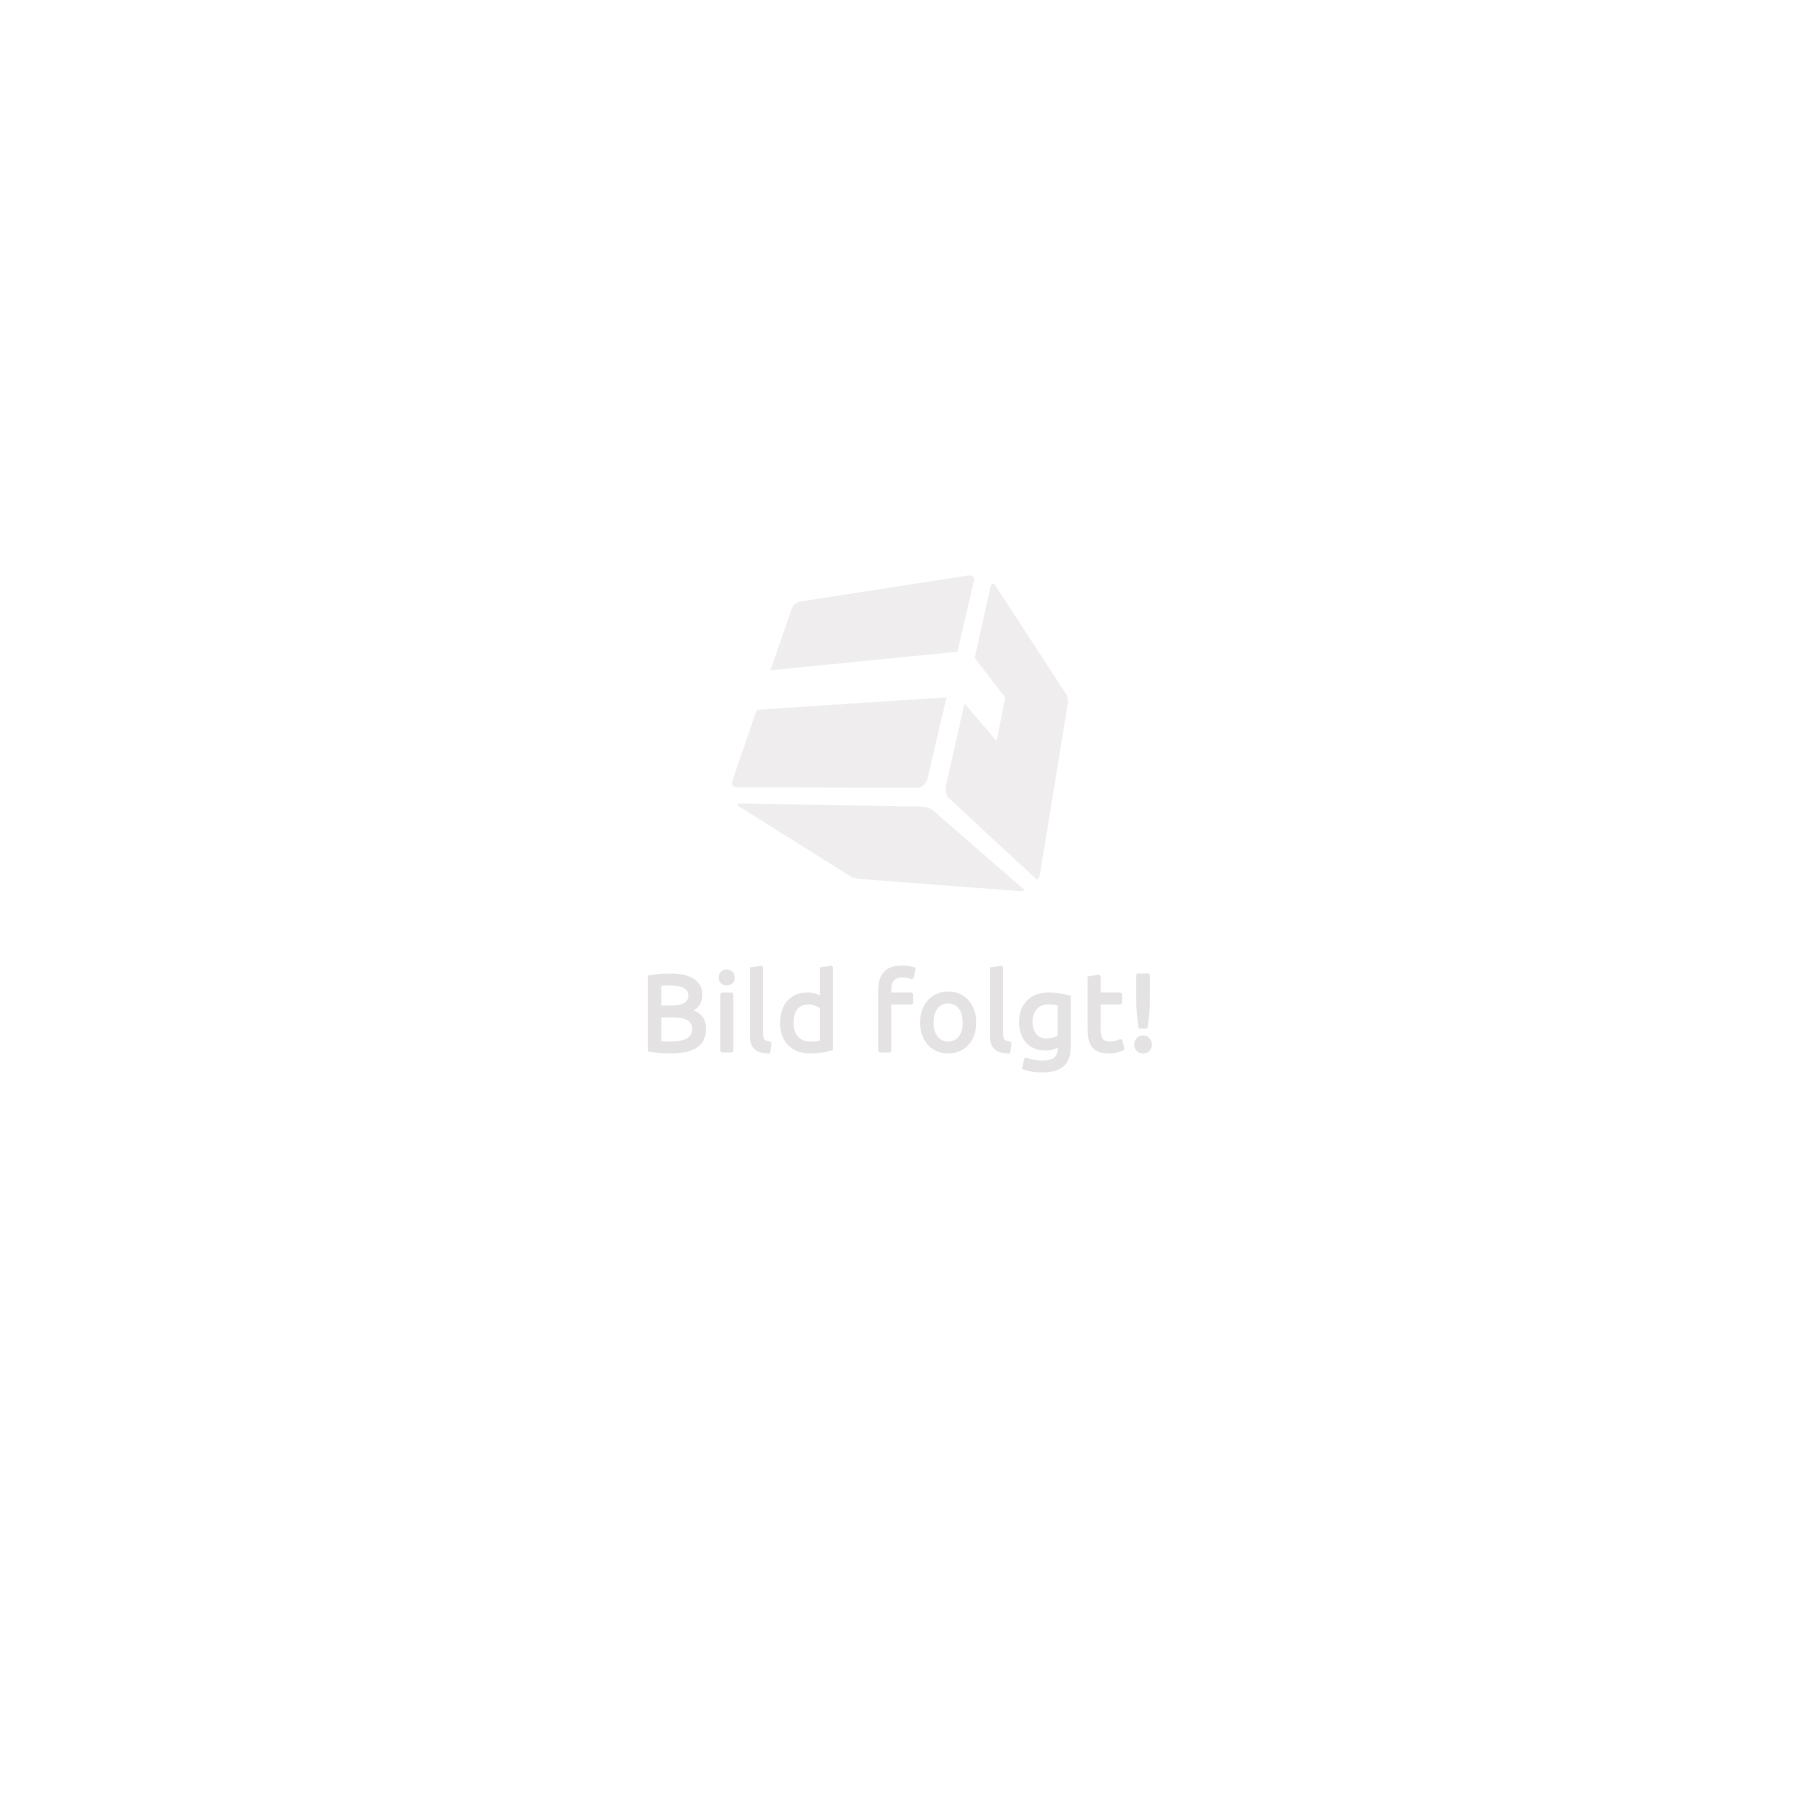 4 dining chairs synthetic leather white